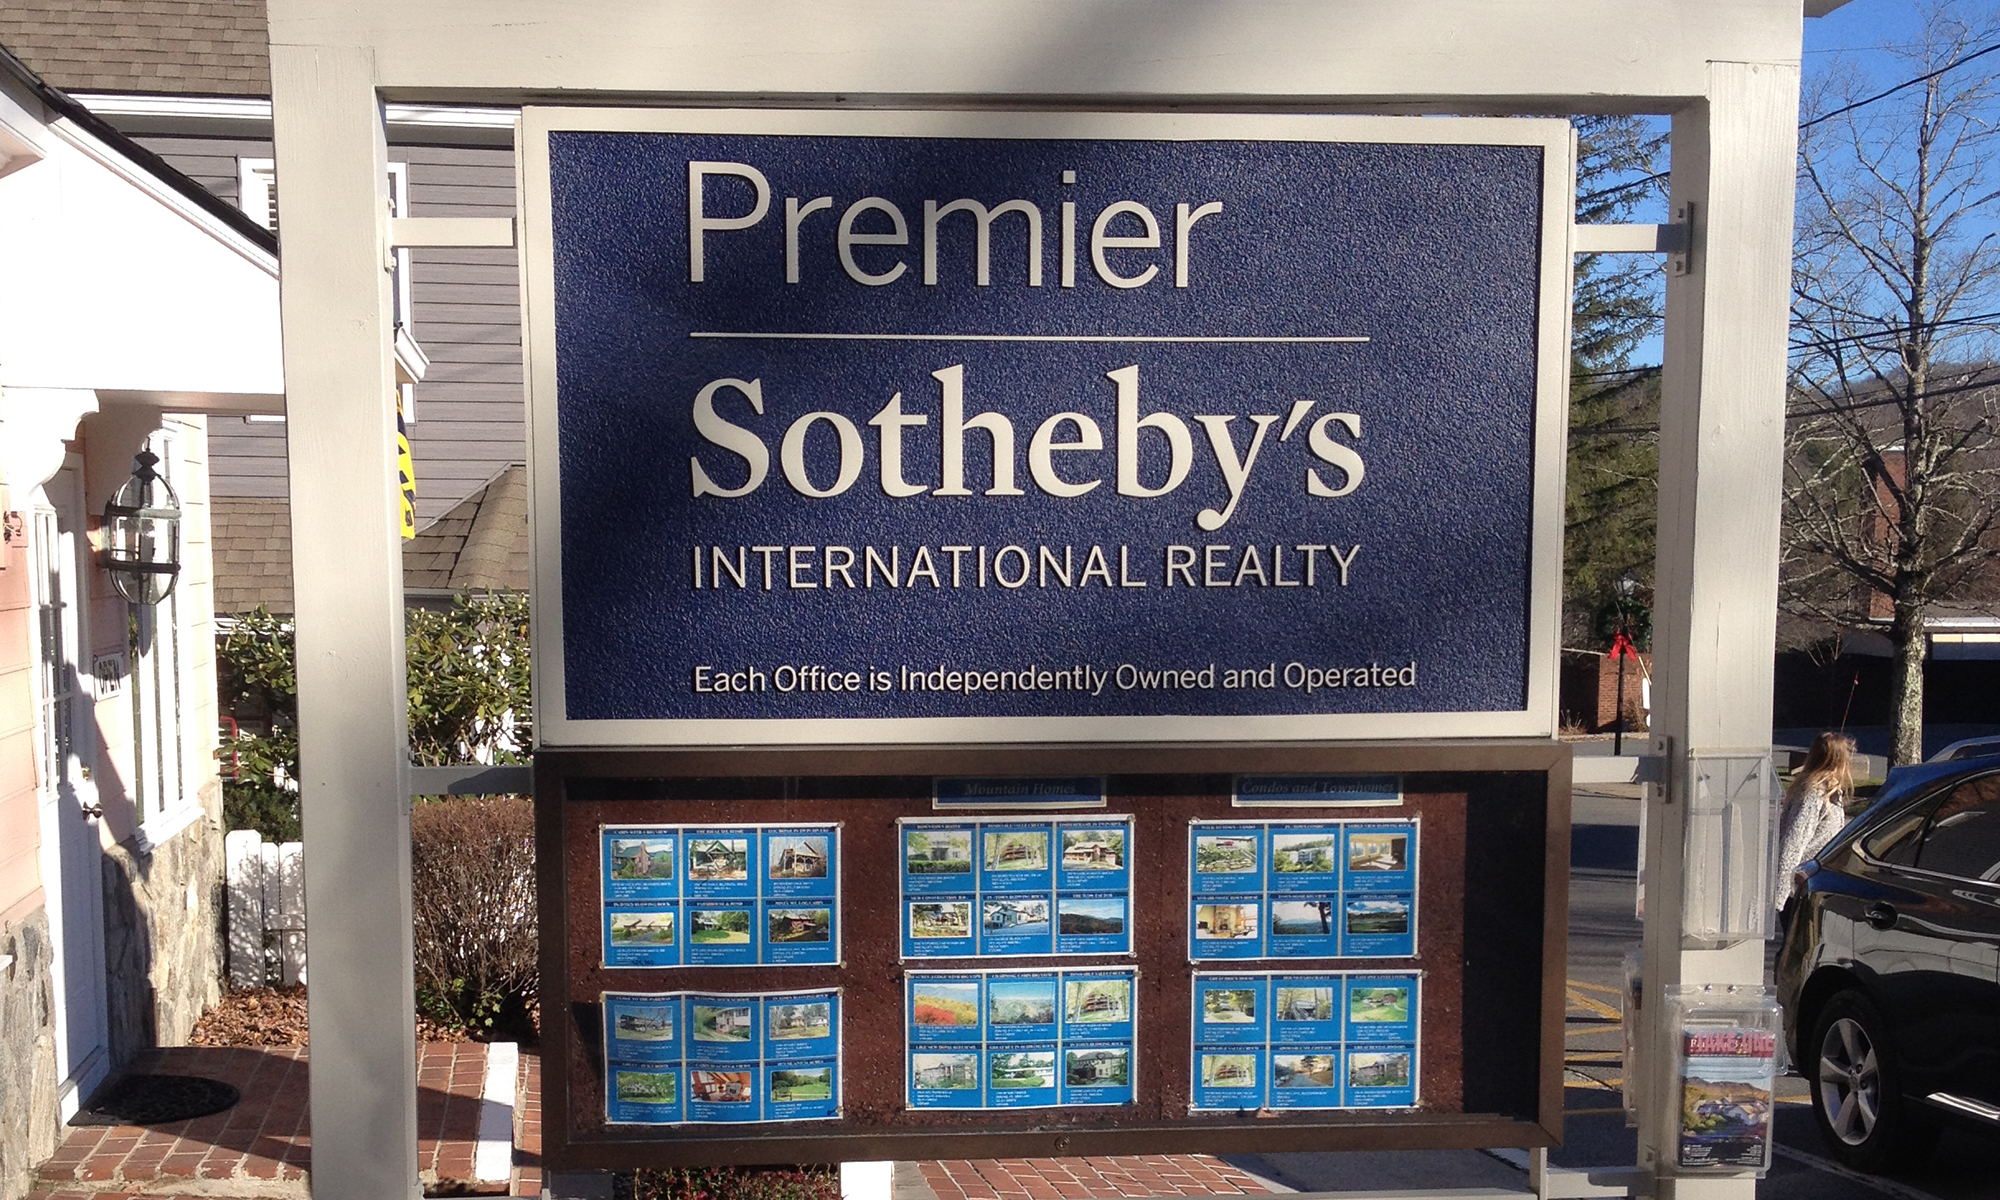 Premier Sotheby's International Realty Blowing Rock